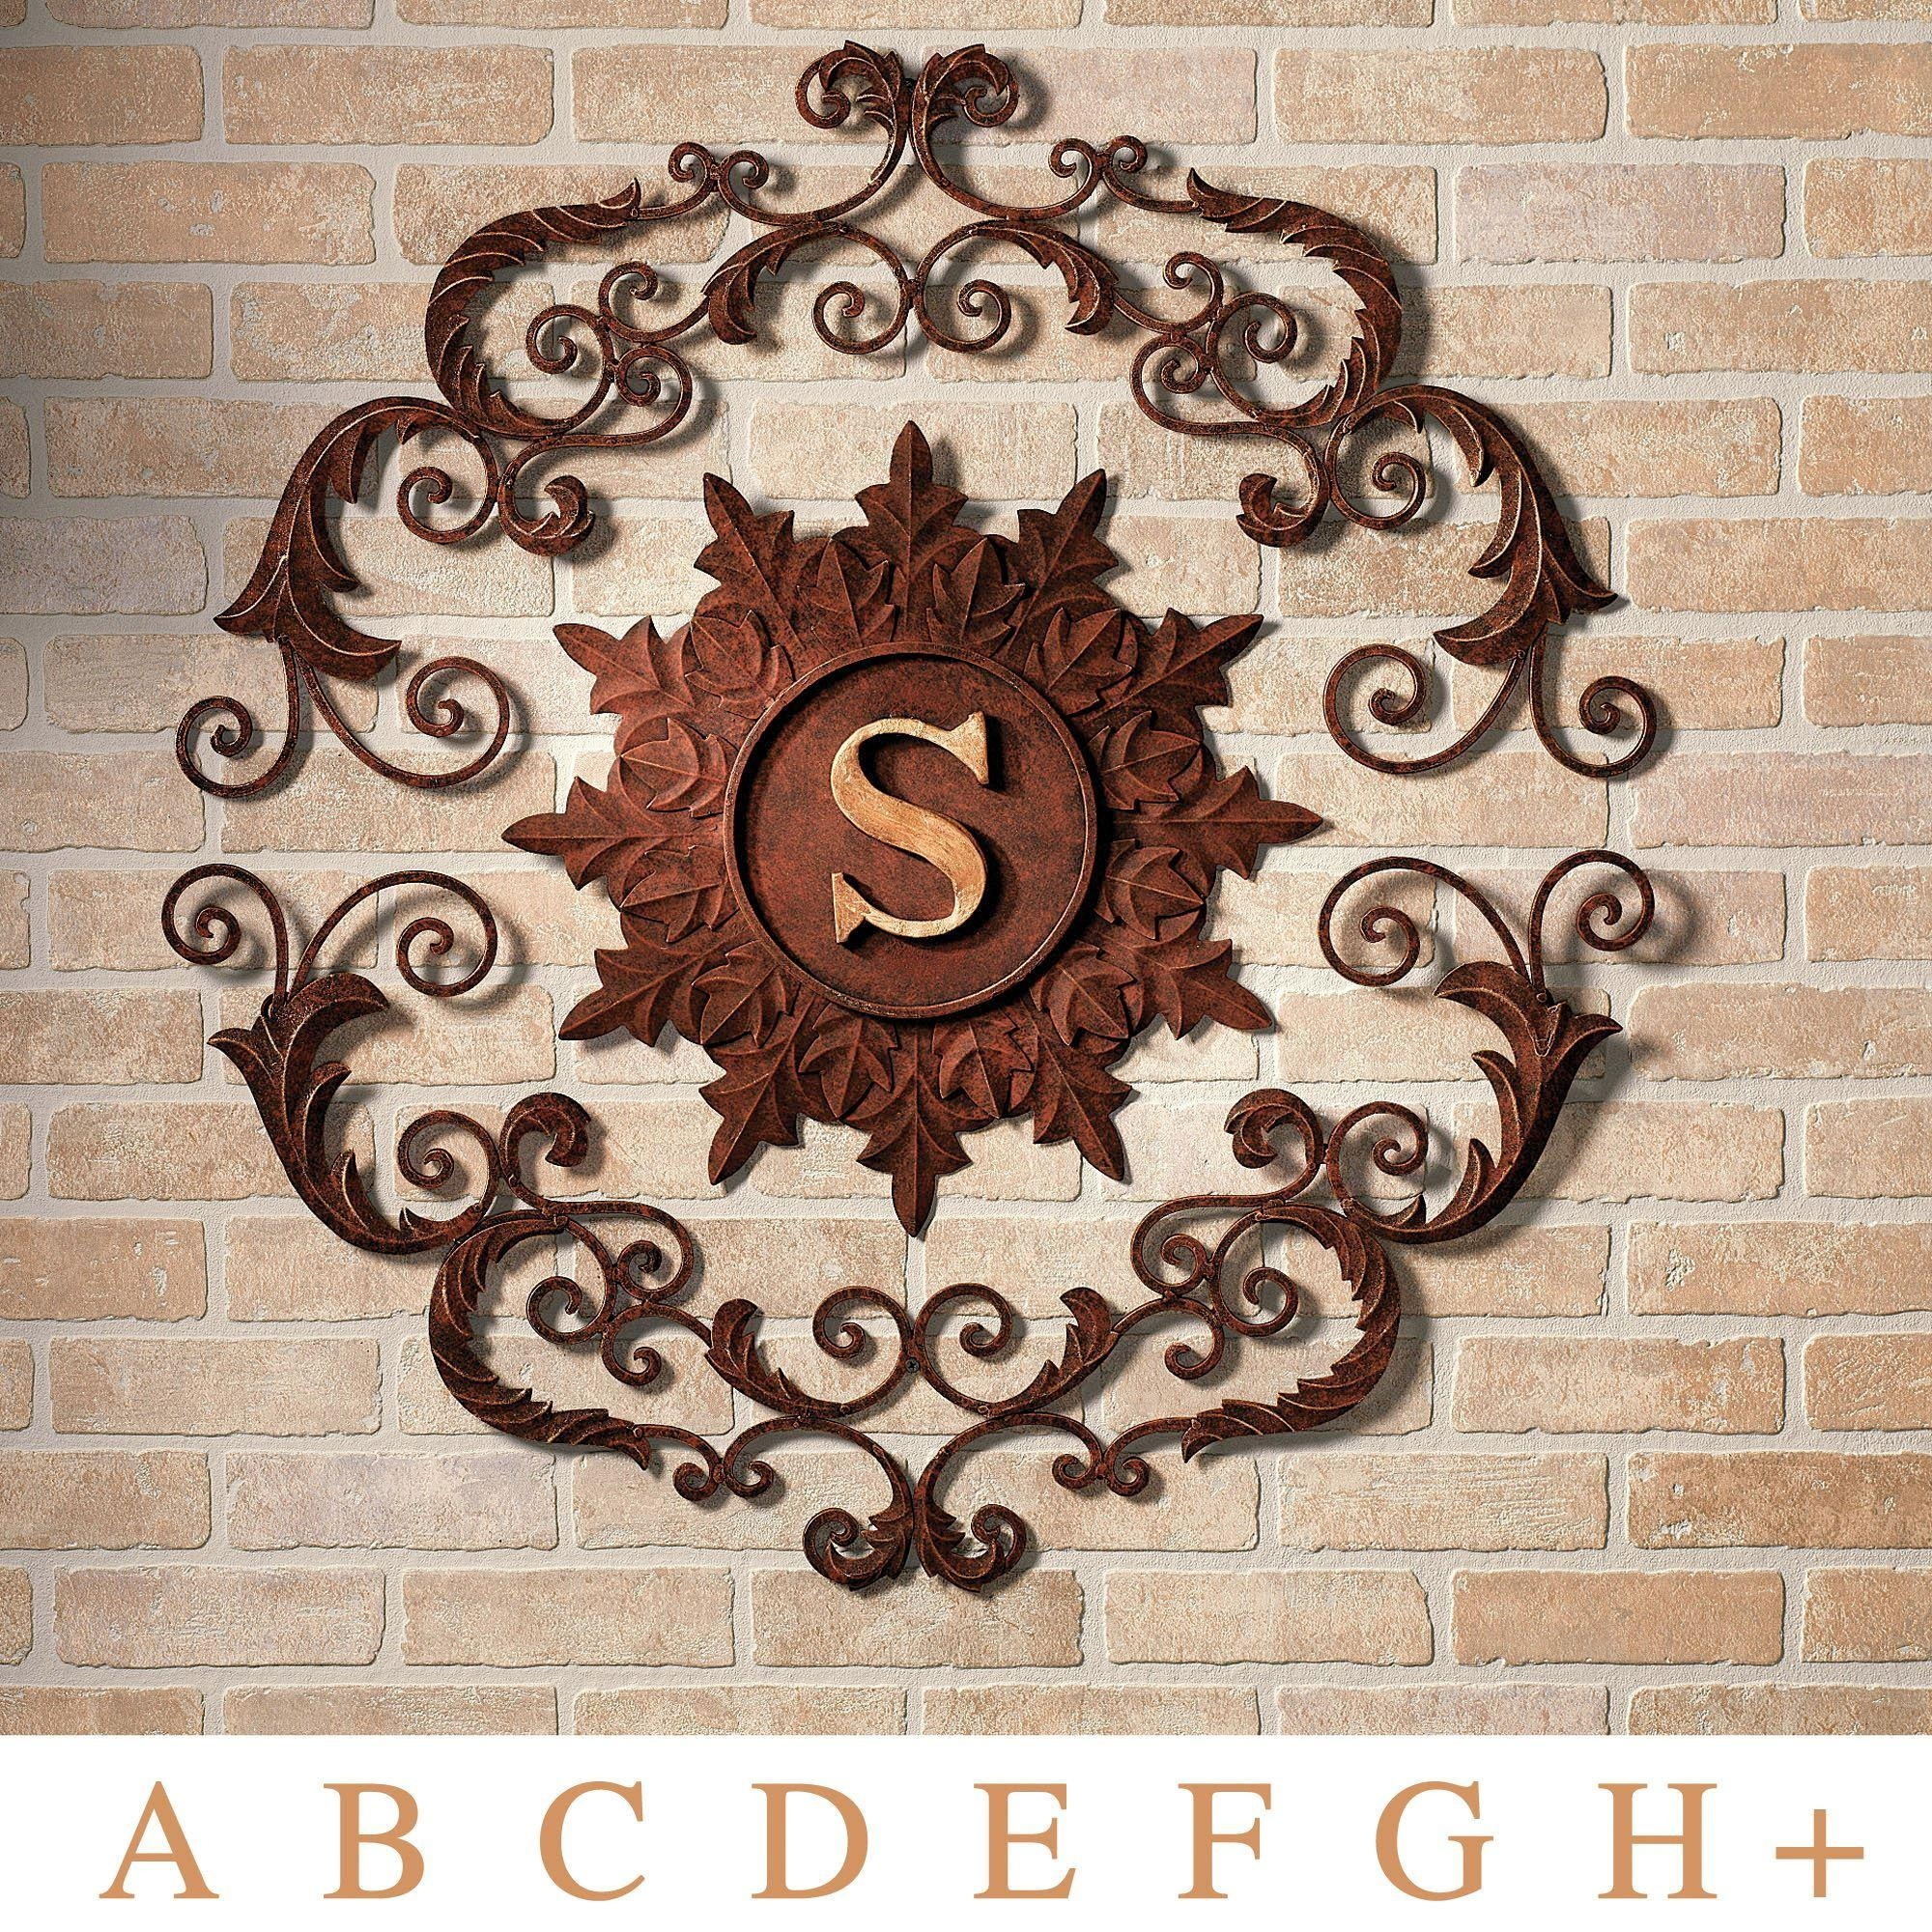 Kingston Monogram Metal Wall Grille For Monogram Metal Wall Art (Image 8 of 20)